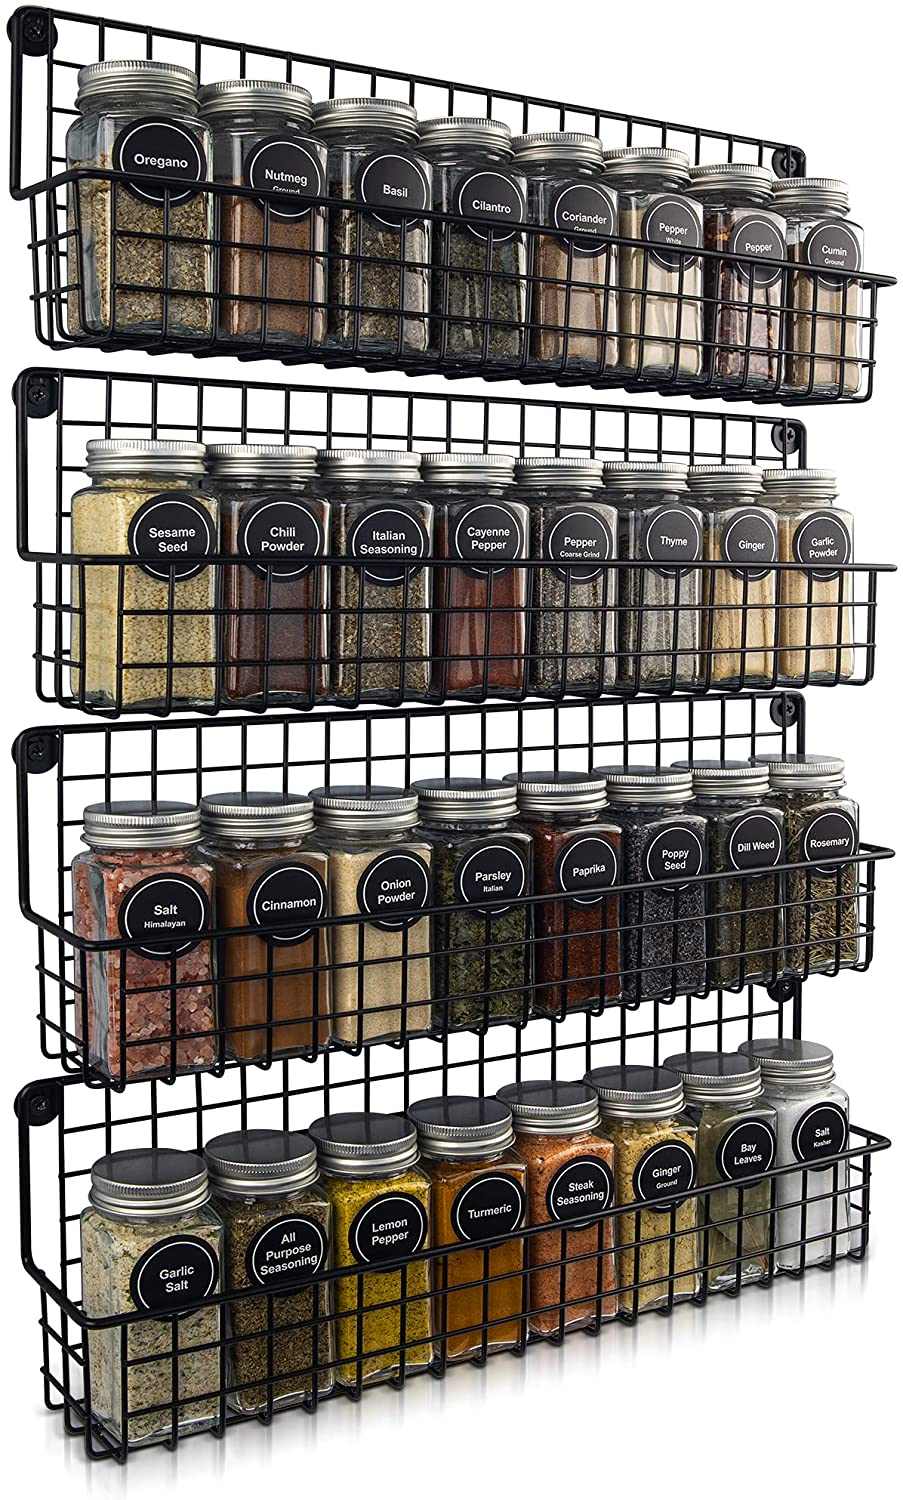 Farmhouse Style Hanging Spice Racks For Wall Mount - Easy To Install Set of 4 Space Saving Racks - The Ideal Seasoning Organizer For Your Kitchen